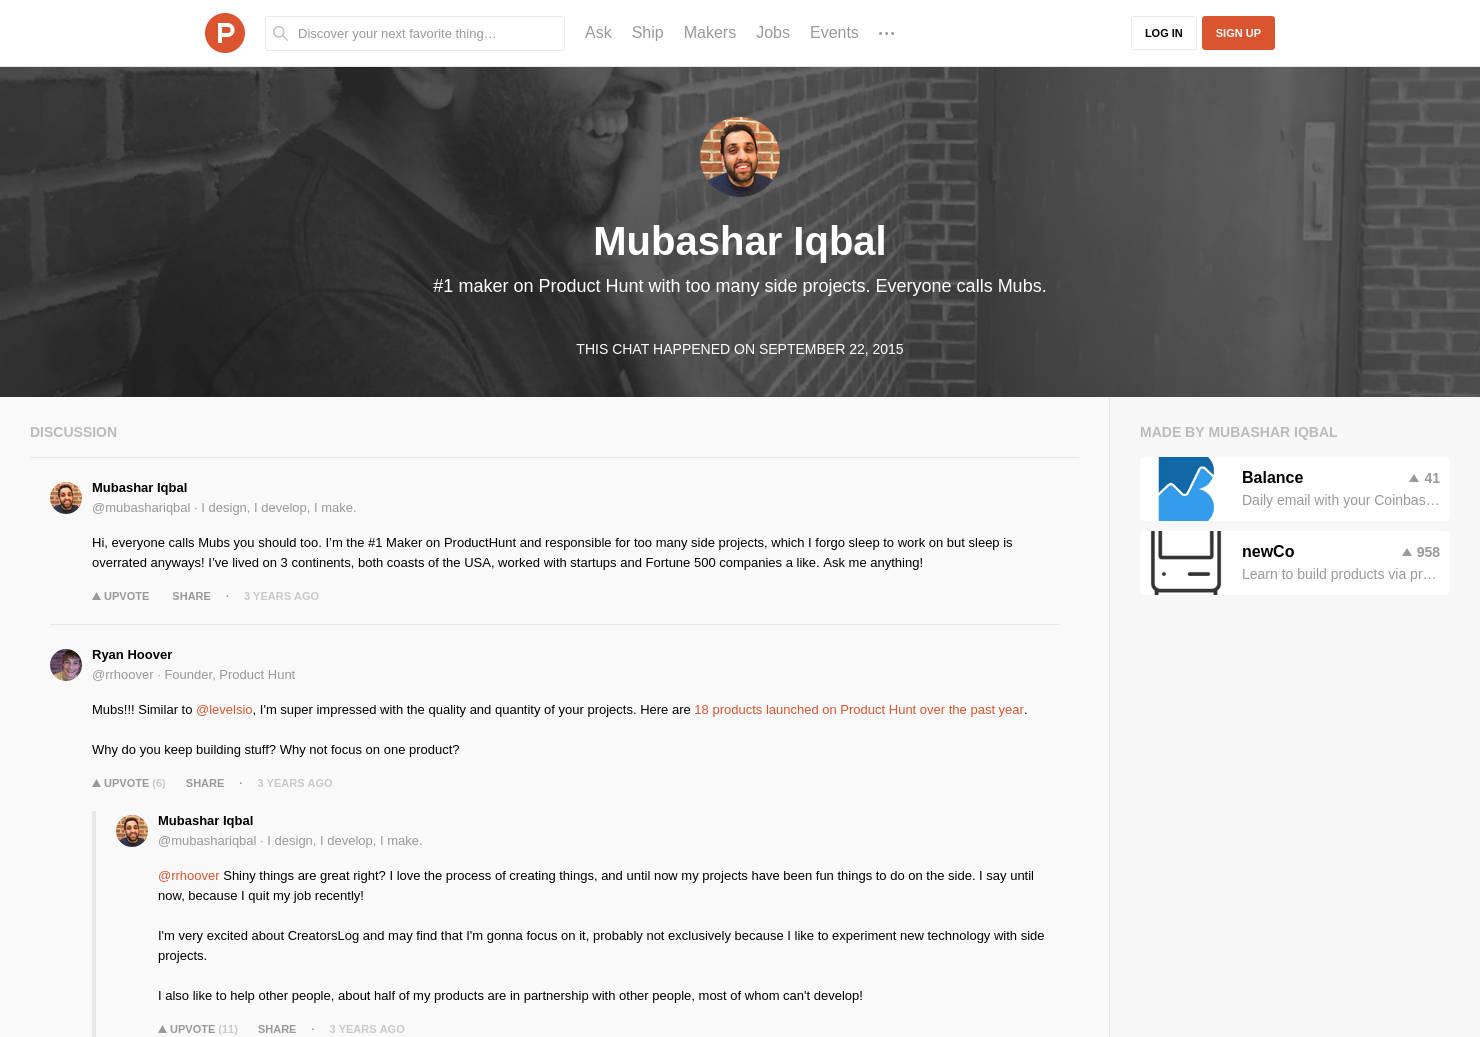 Mubashar Iqbal LIVE Chat on Product Hunt